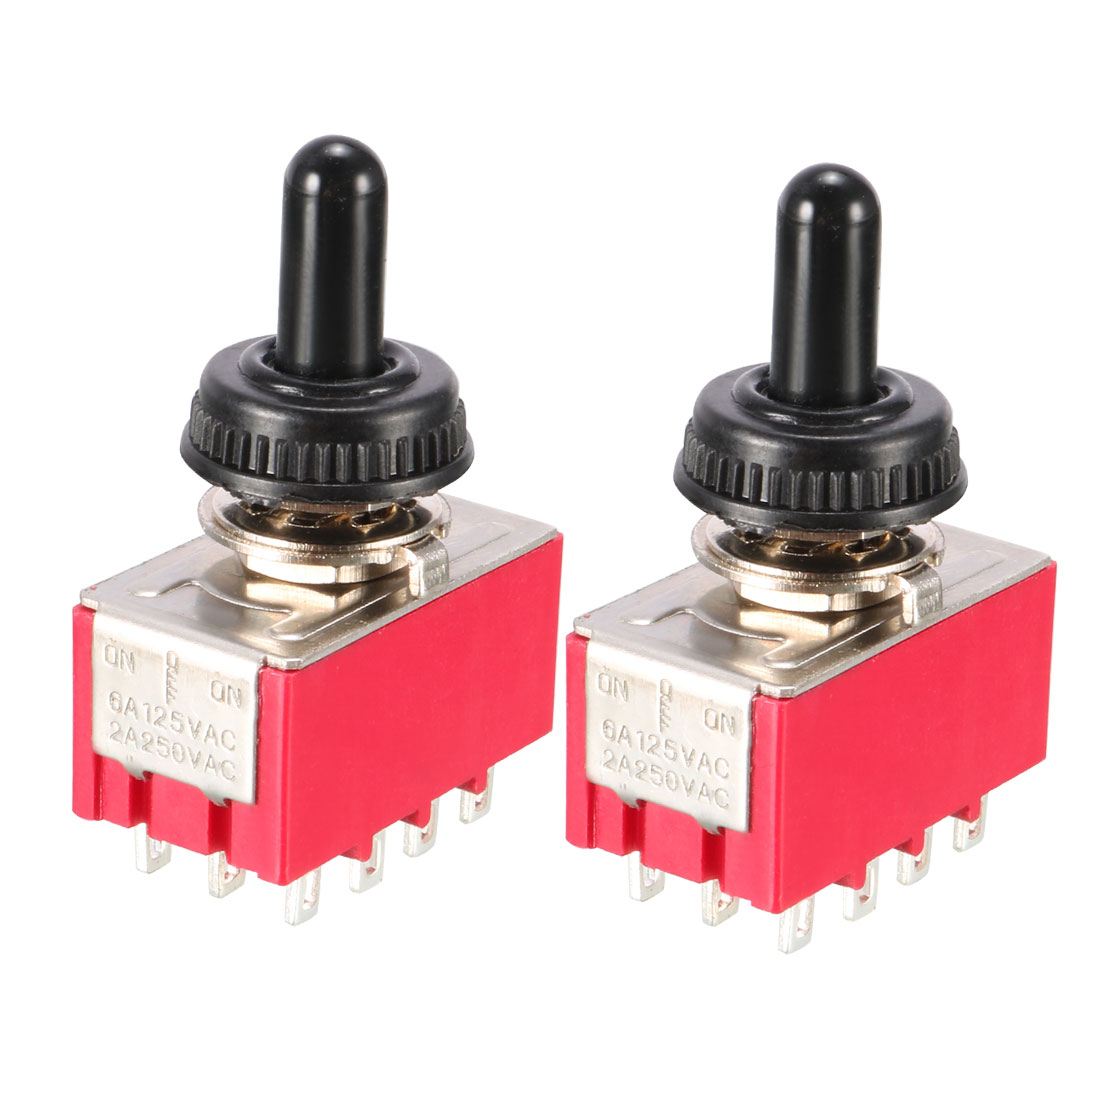 AC 250V 2A 125V 6A on/off/on 3 Position 4PDT Toggle Switch 2PCS w Waterproof Cap